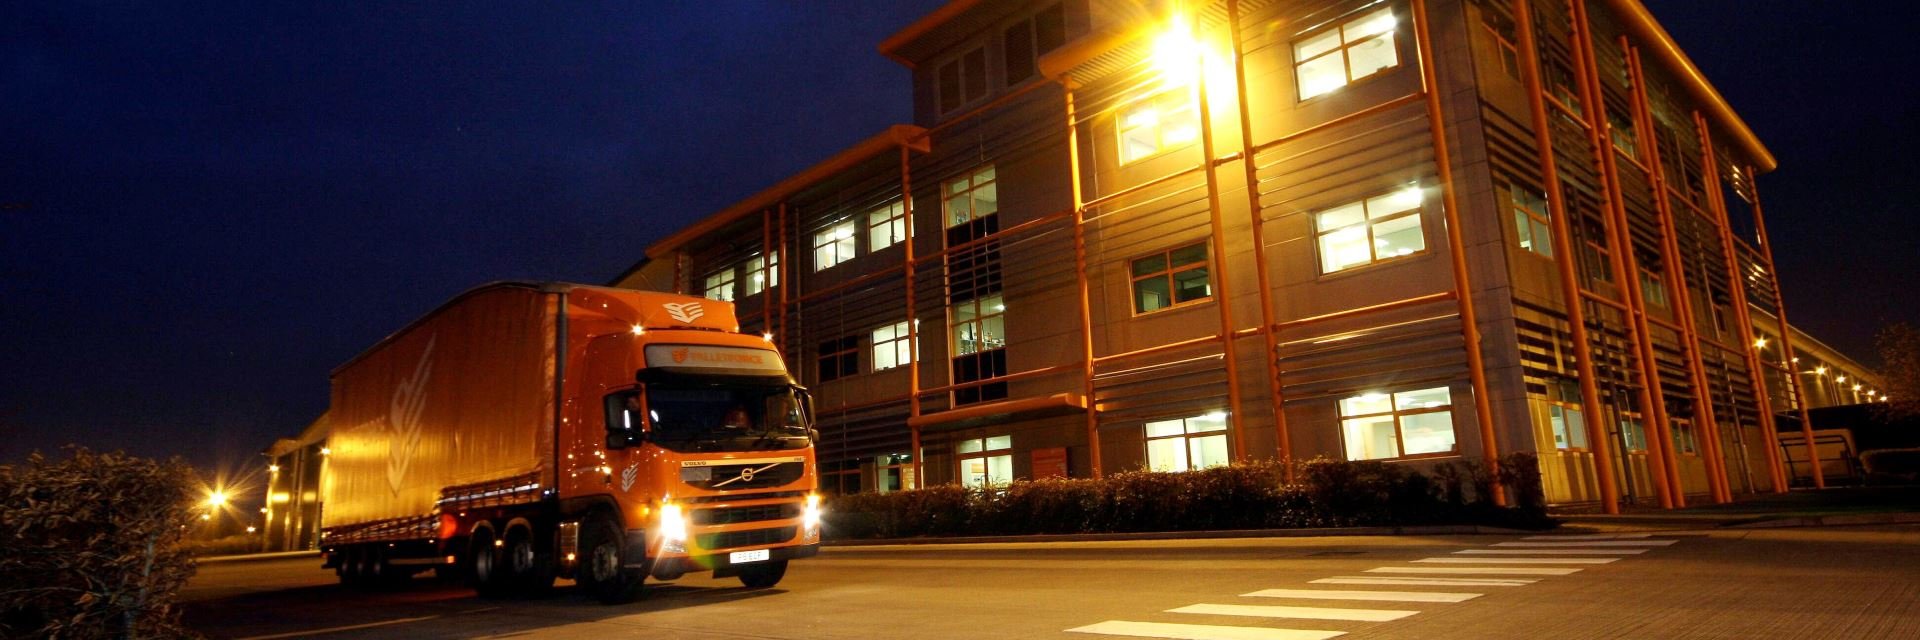 Pallet Force Service - Night View of Delivery Trailer